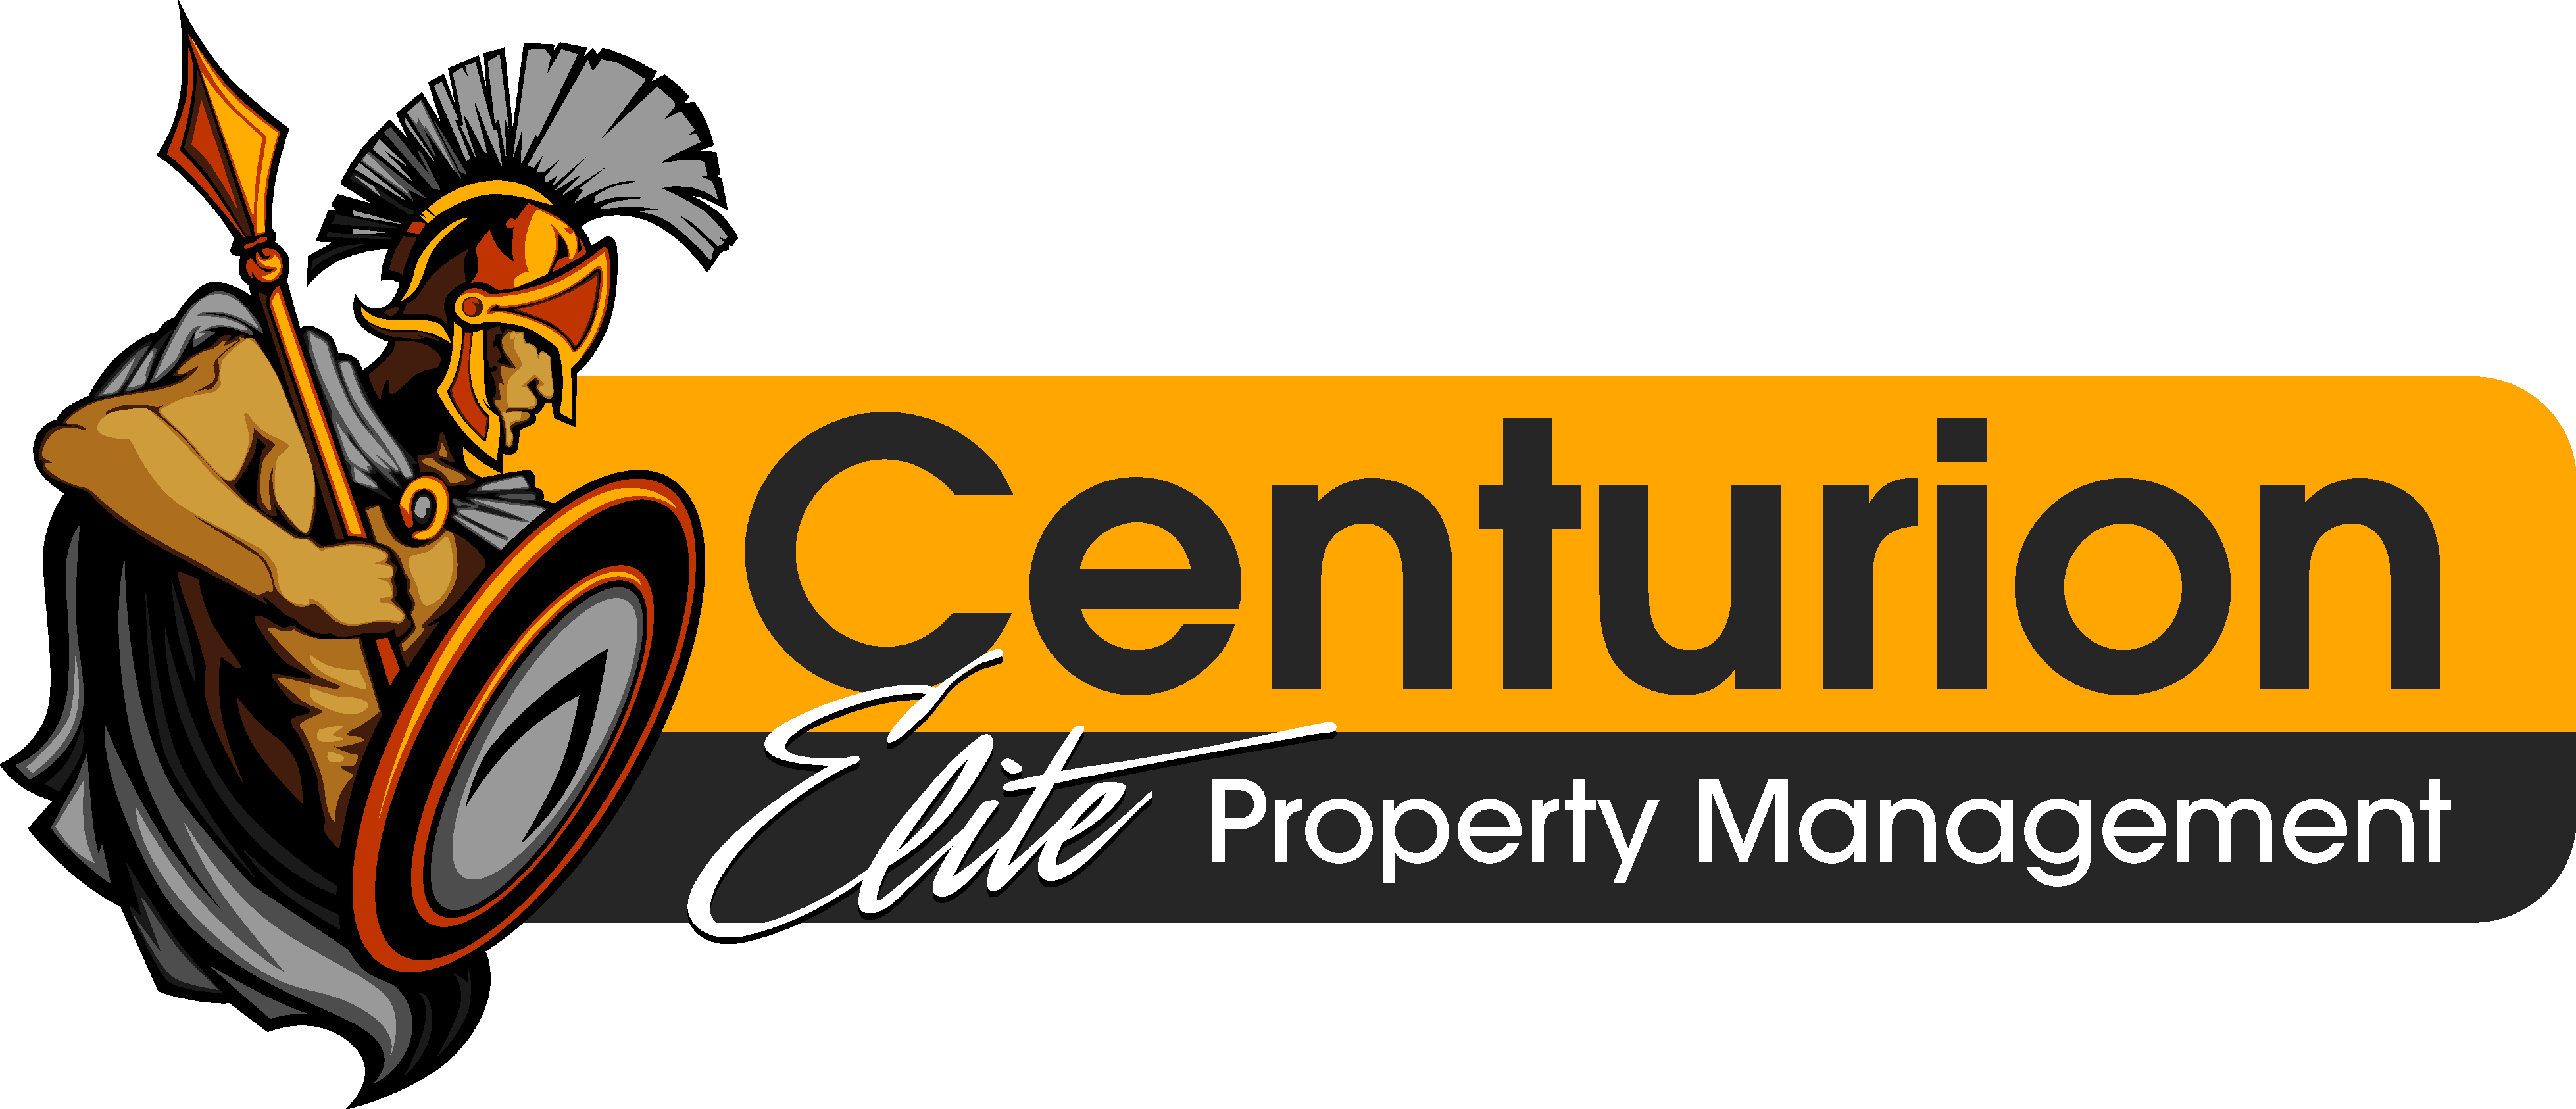 Elite , Experienced Property Management Team ,Kalamunda, High Wycombe Forrestfield